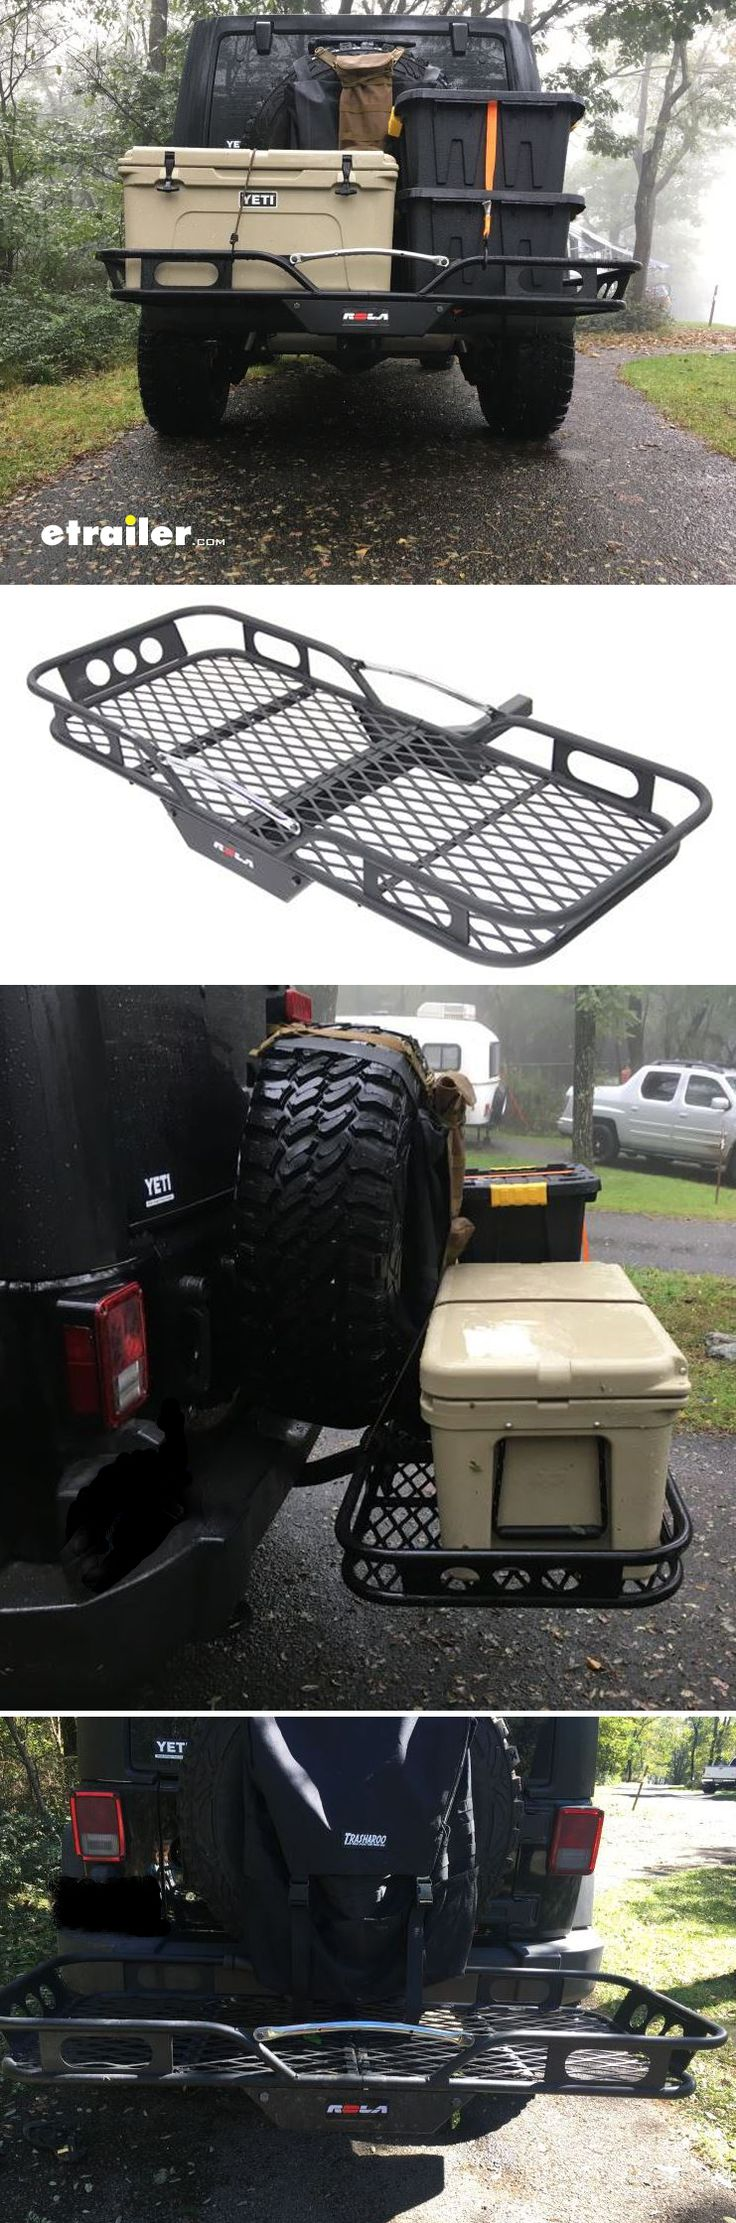 "Tired of throwing gear on the roof rack struggling to get it down and worring about clearance issues or being top heavy? (every Jeepers off-roading nightmare). You need a rack with low center of gravity, that won't affect ground clearance and most importantly fits your 35"" spare. Rola hitch rack is the answer!"